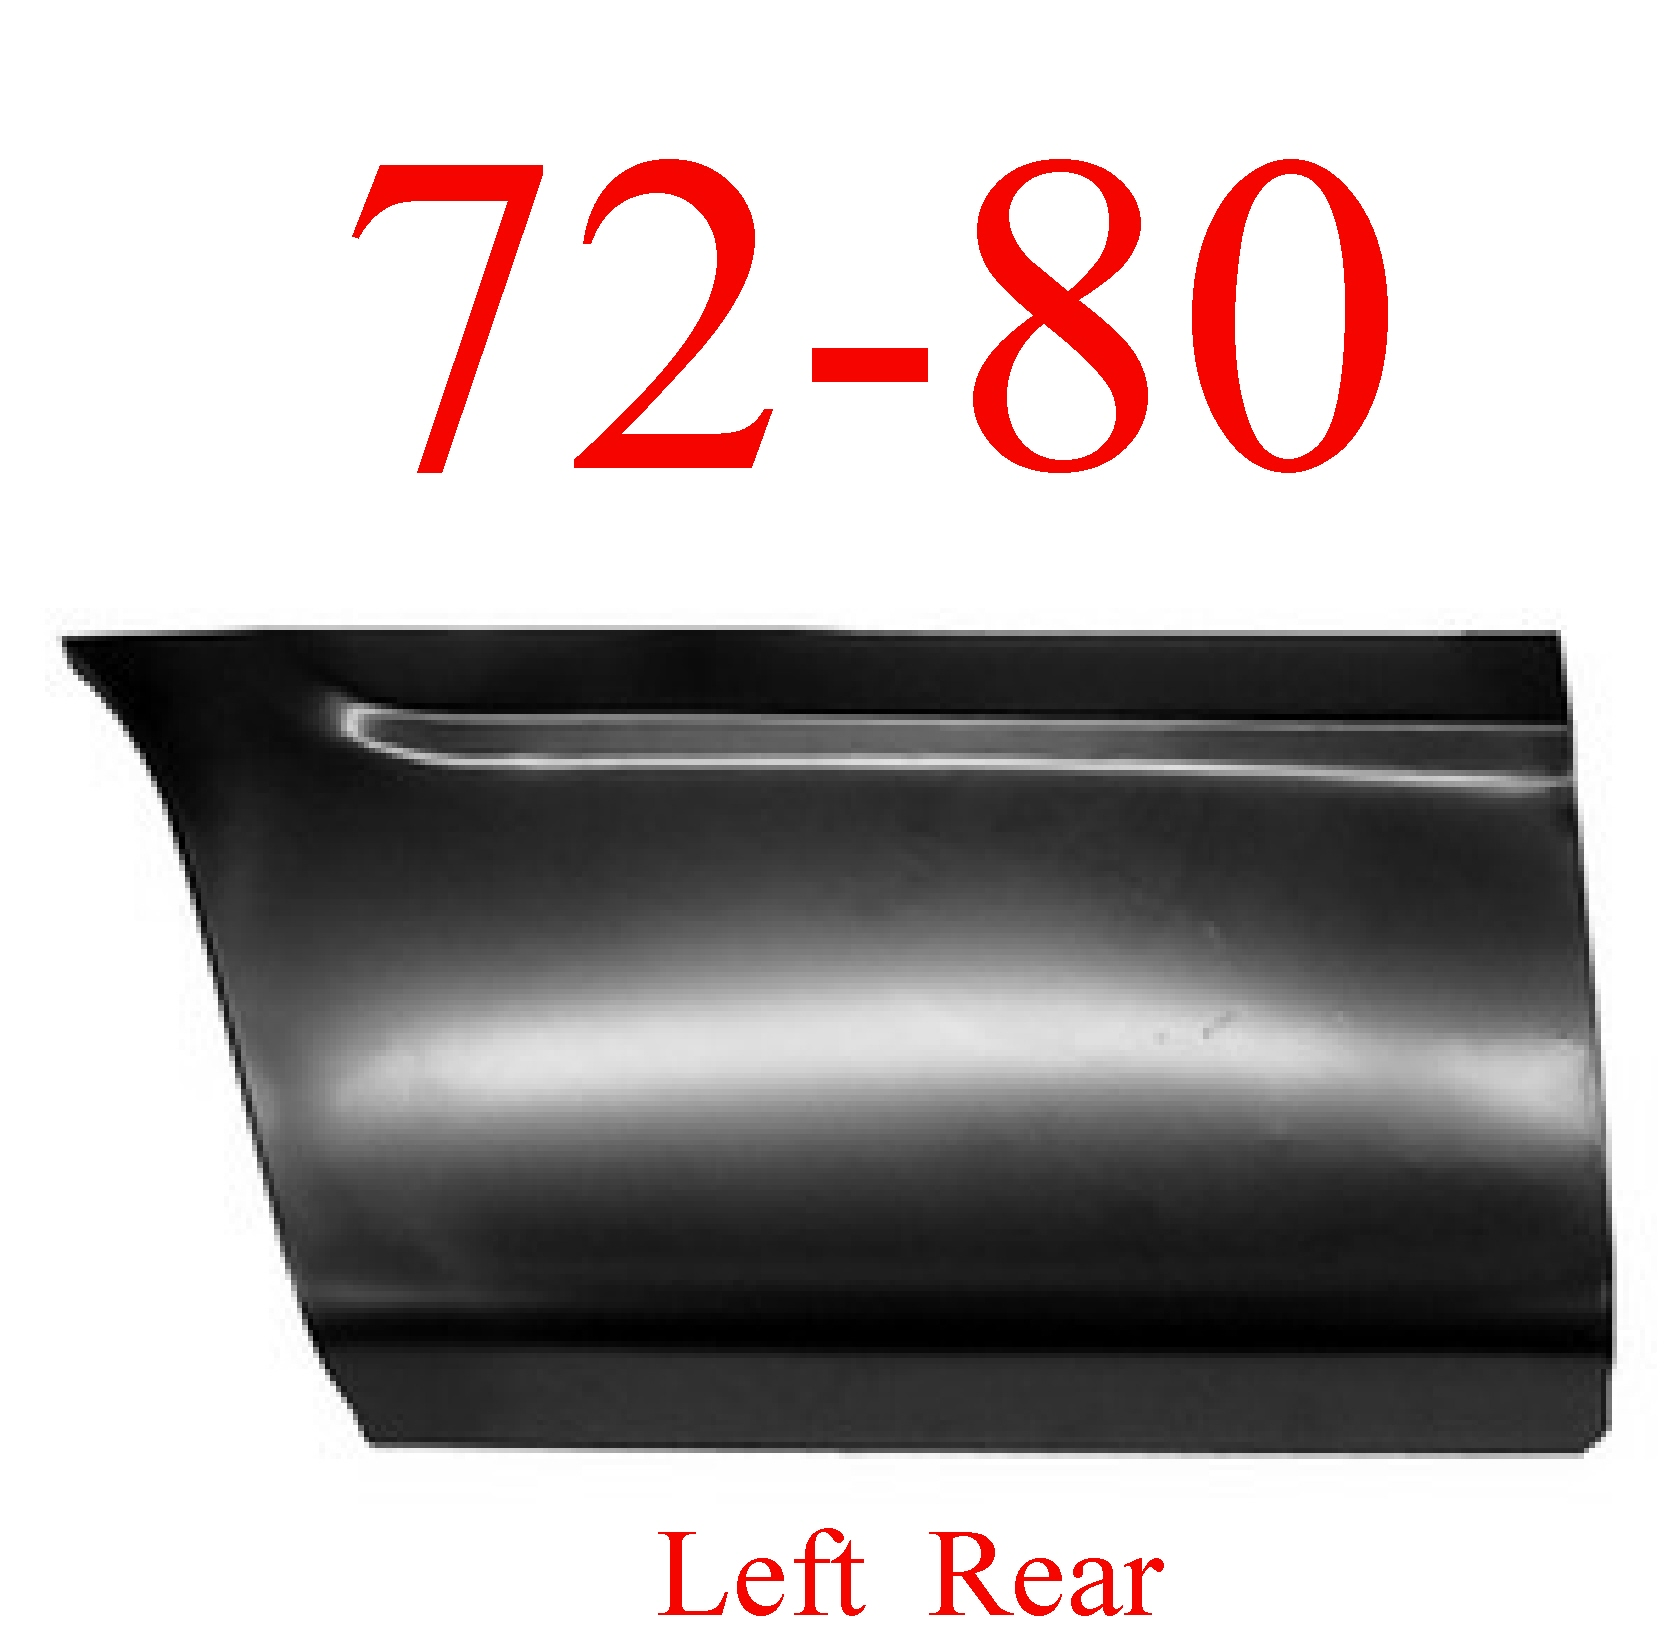 72-80 Dodge Left Rear Lower Bed Panel 8'